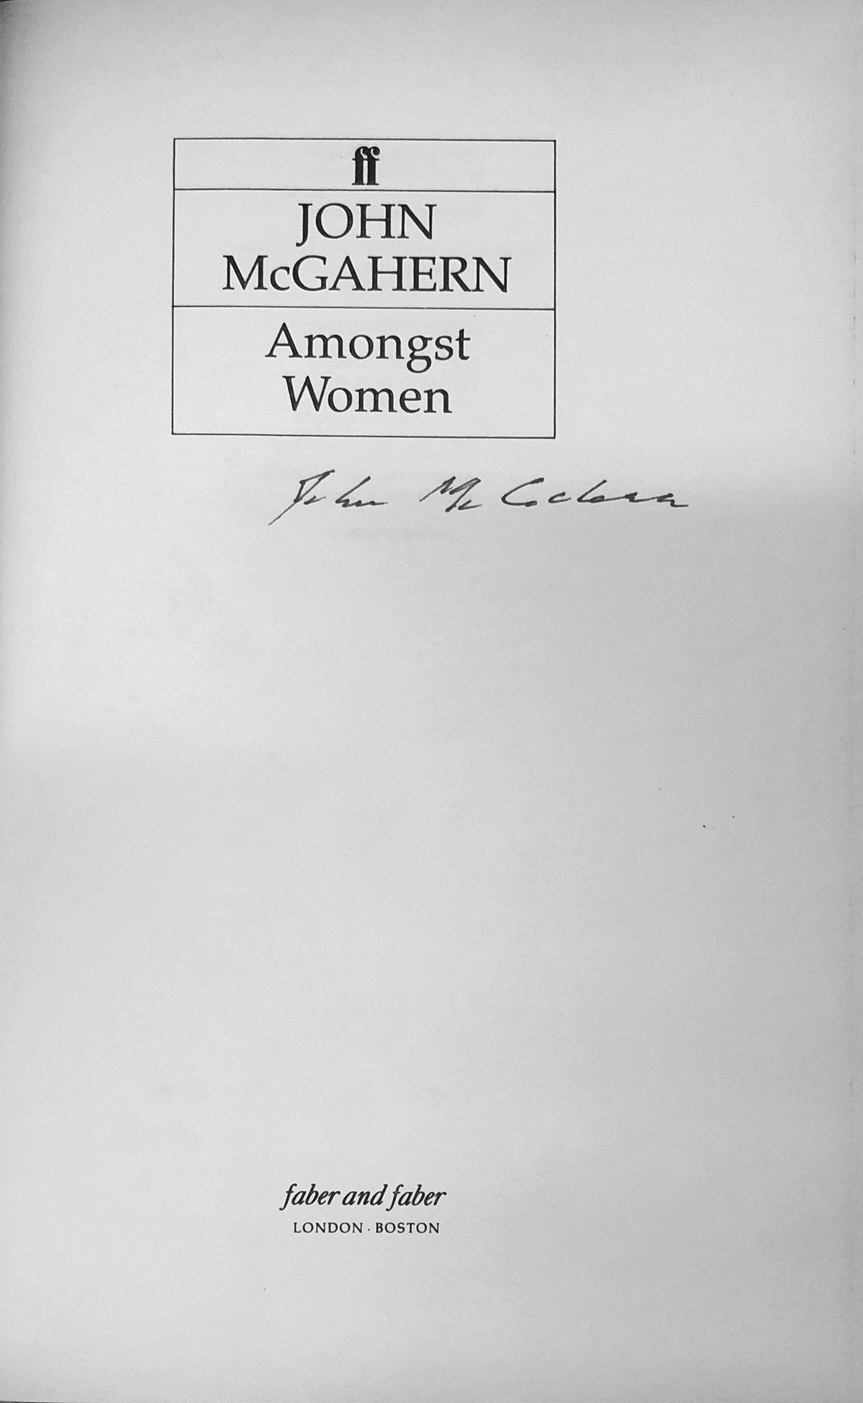 Lot 34 - Mc Gahern (John) Amongst Women, roy 8vo L. (Faber & Faber) 1990. First Edn. - Signed, d.w.